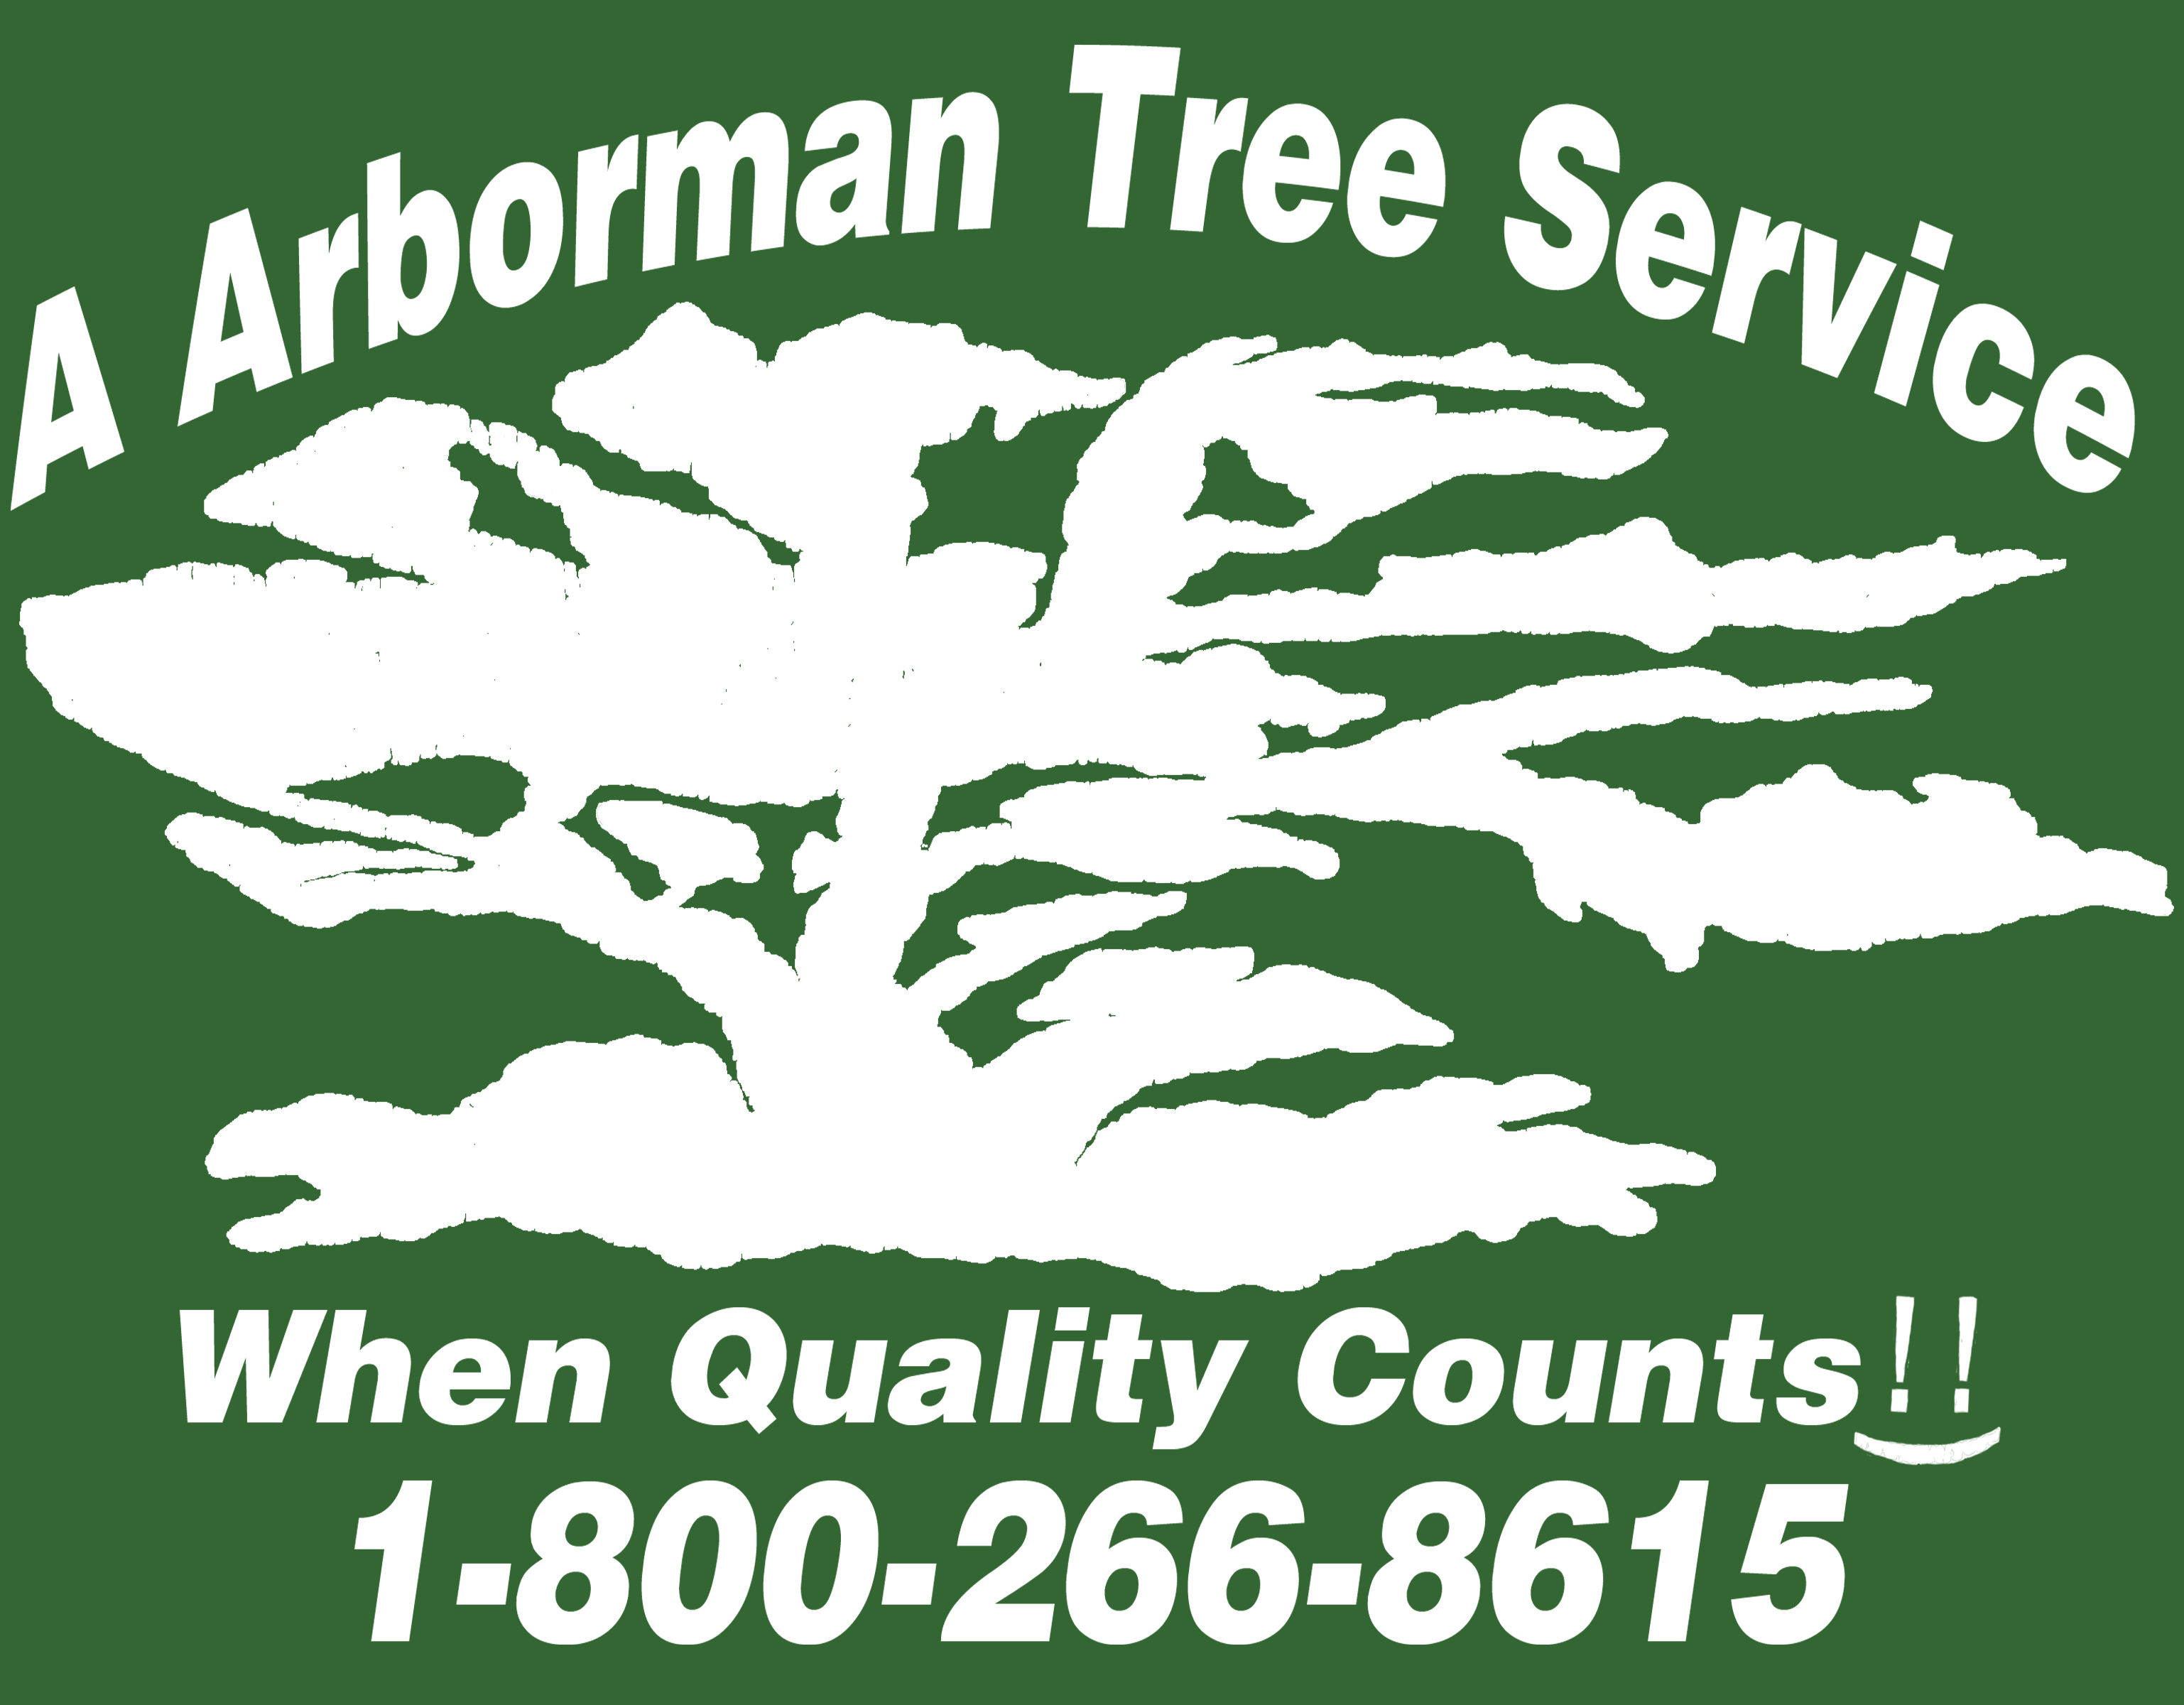 A Arborman Tree Service